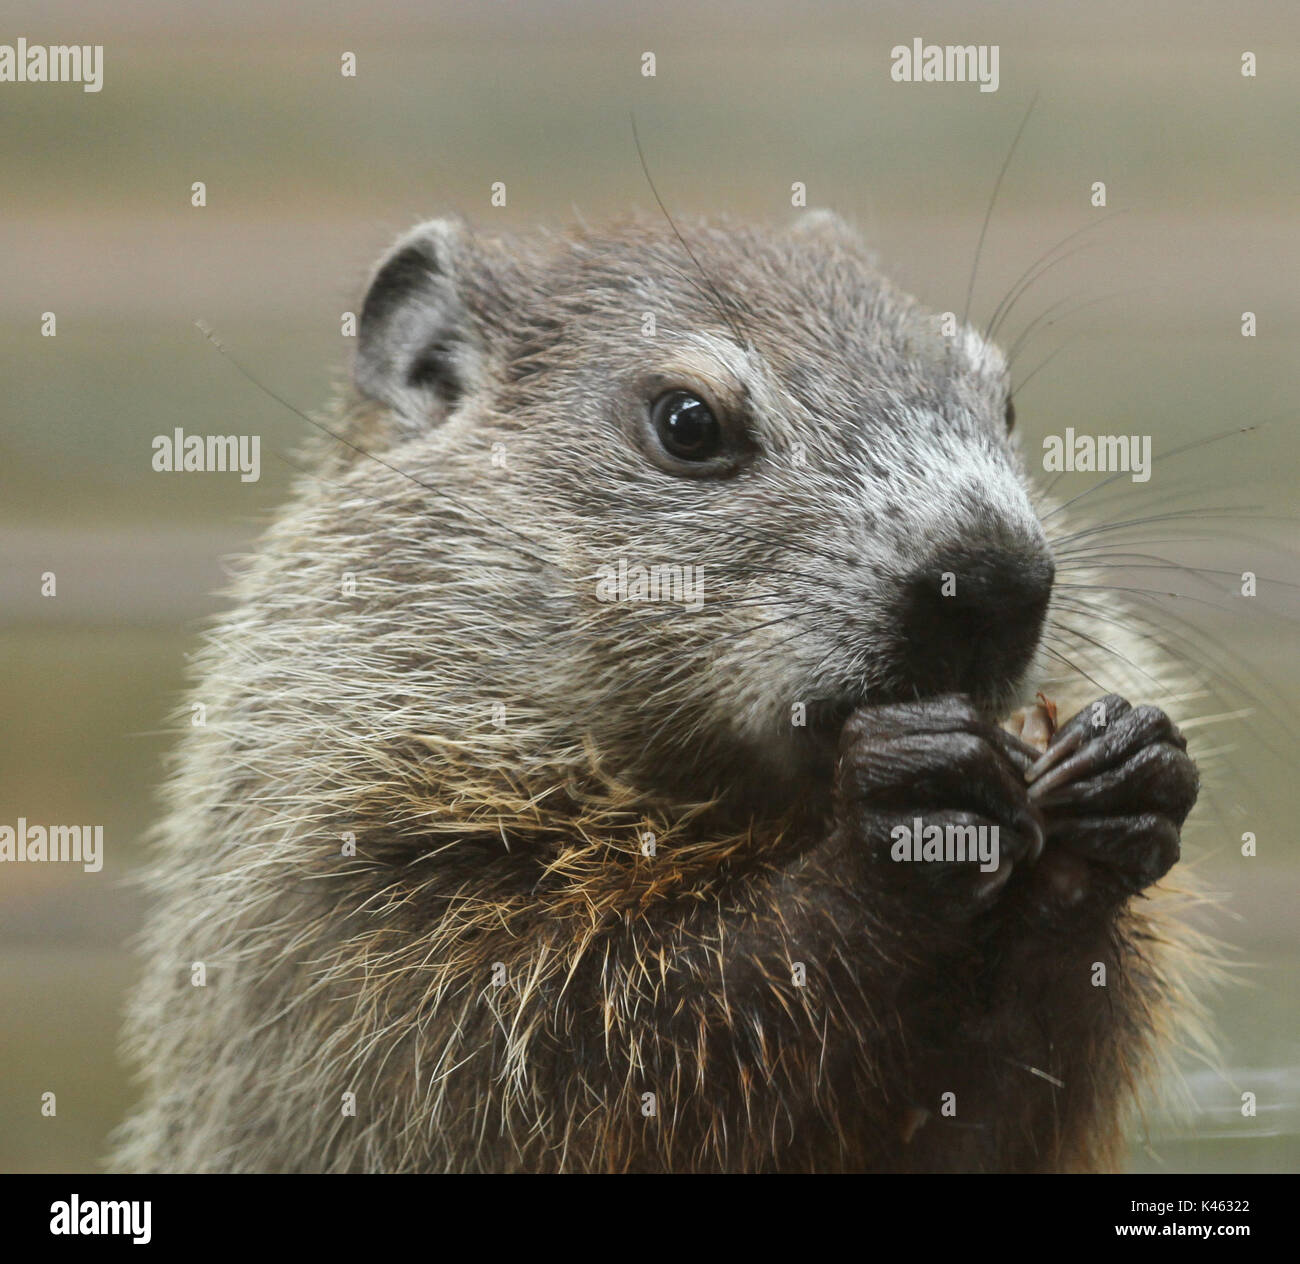 Close-up of an upright juvenile groundhog (Marmota monax) in summer eating a nut clutched in its paws Stock Photo